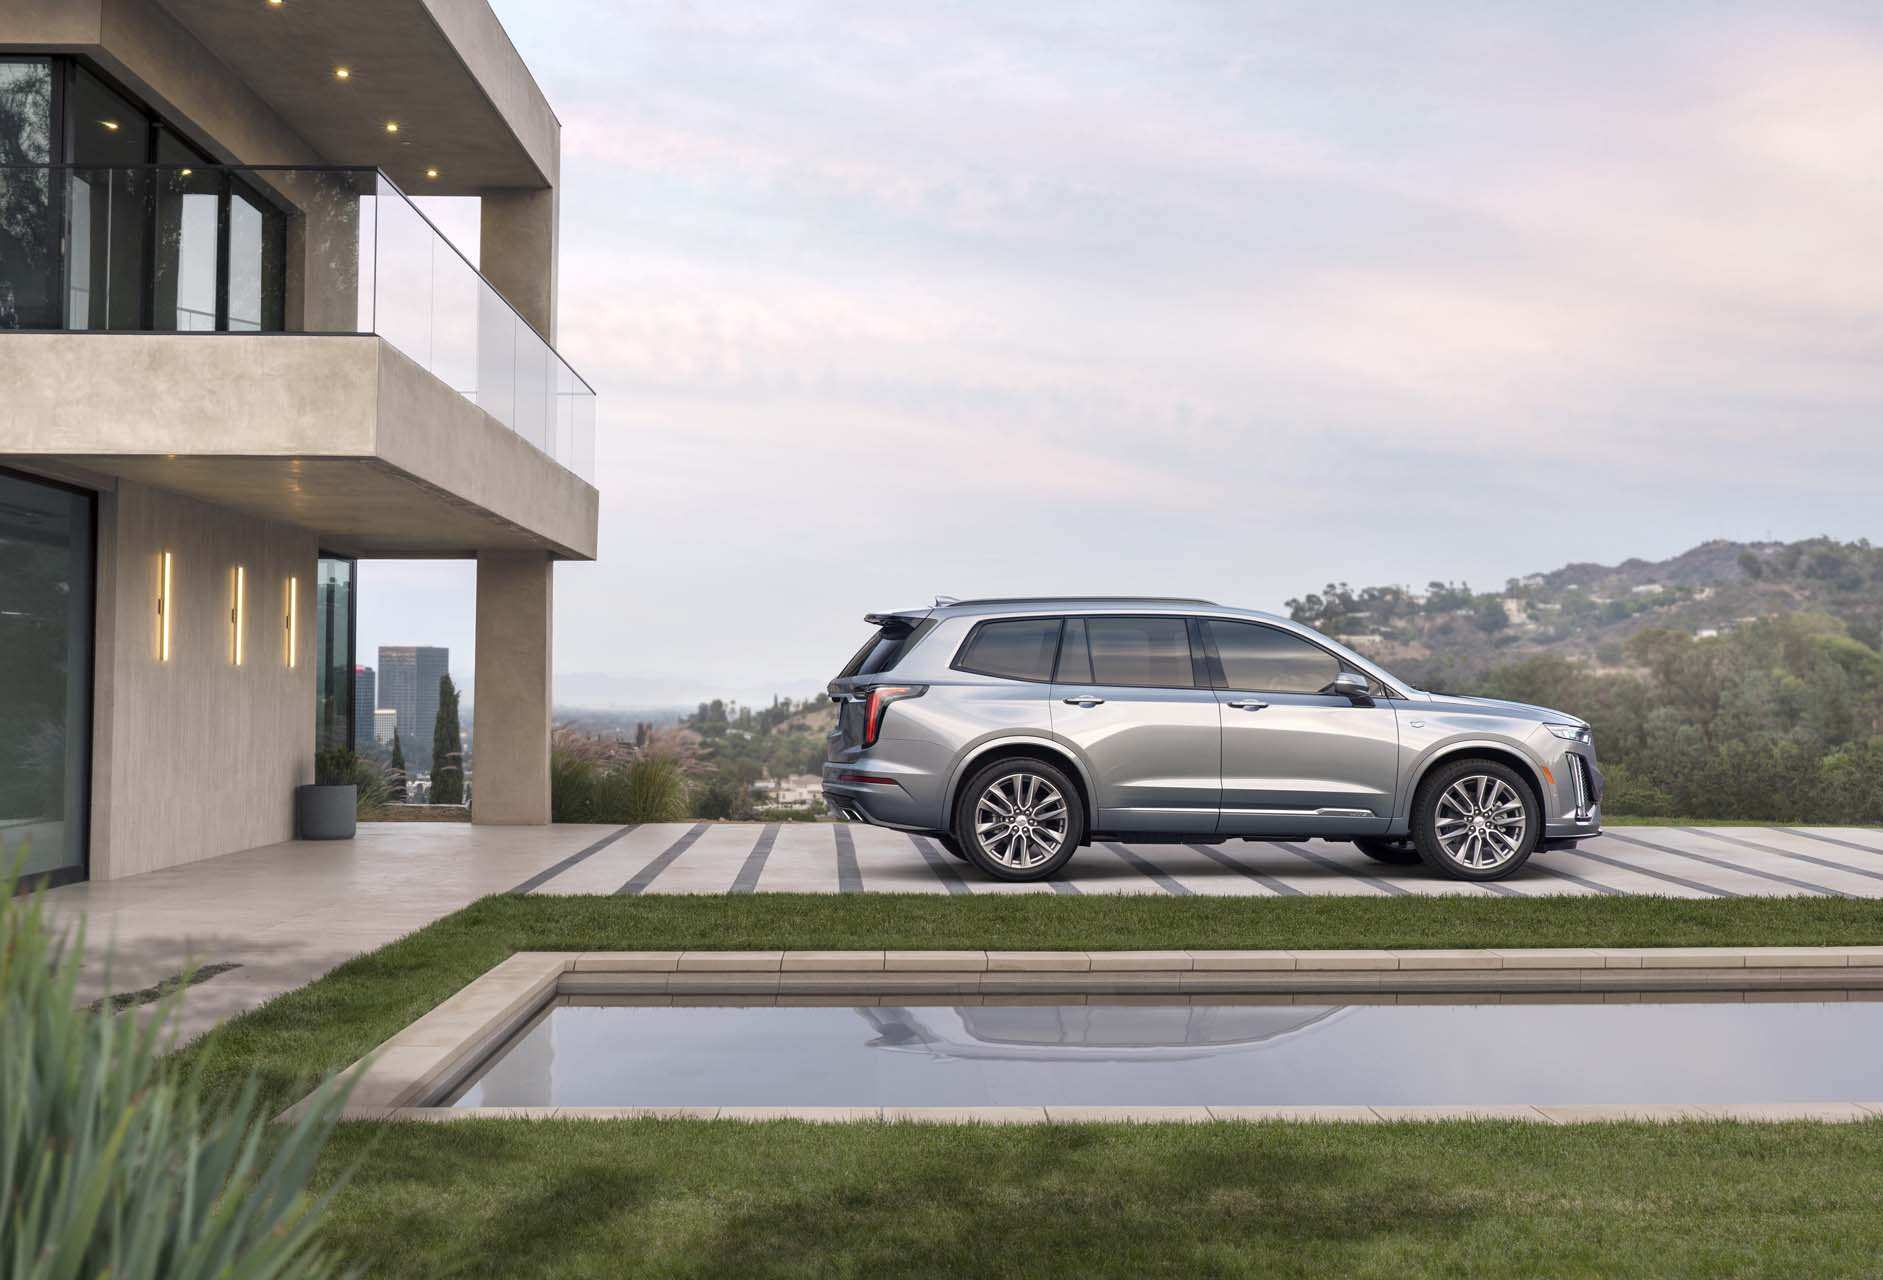 82 Best Cadillac Midsize Suv 2020 Release Date